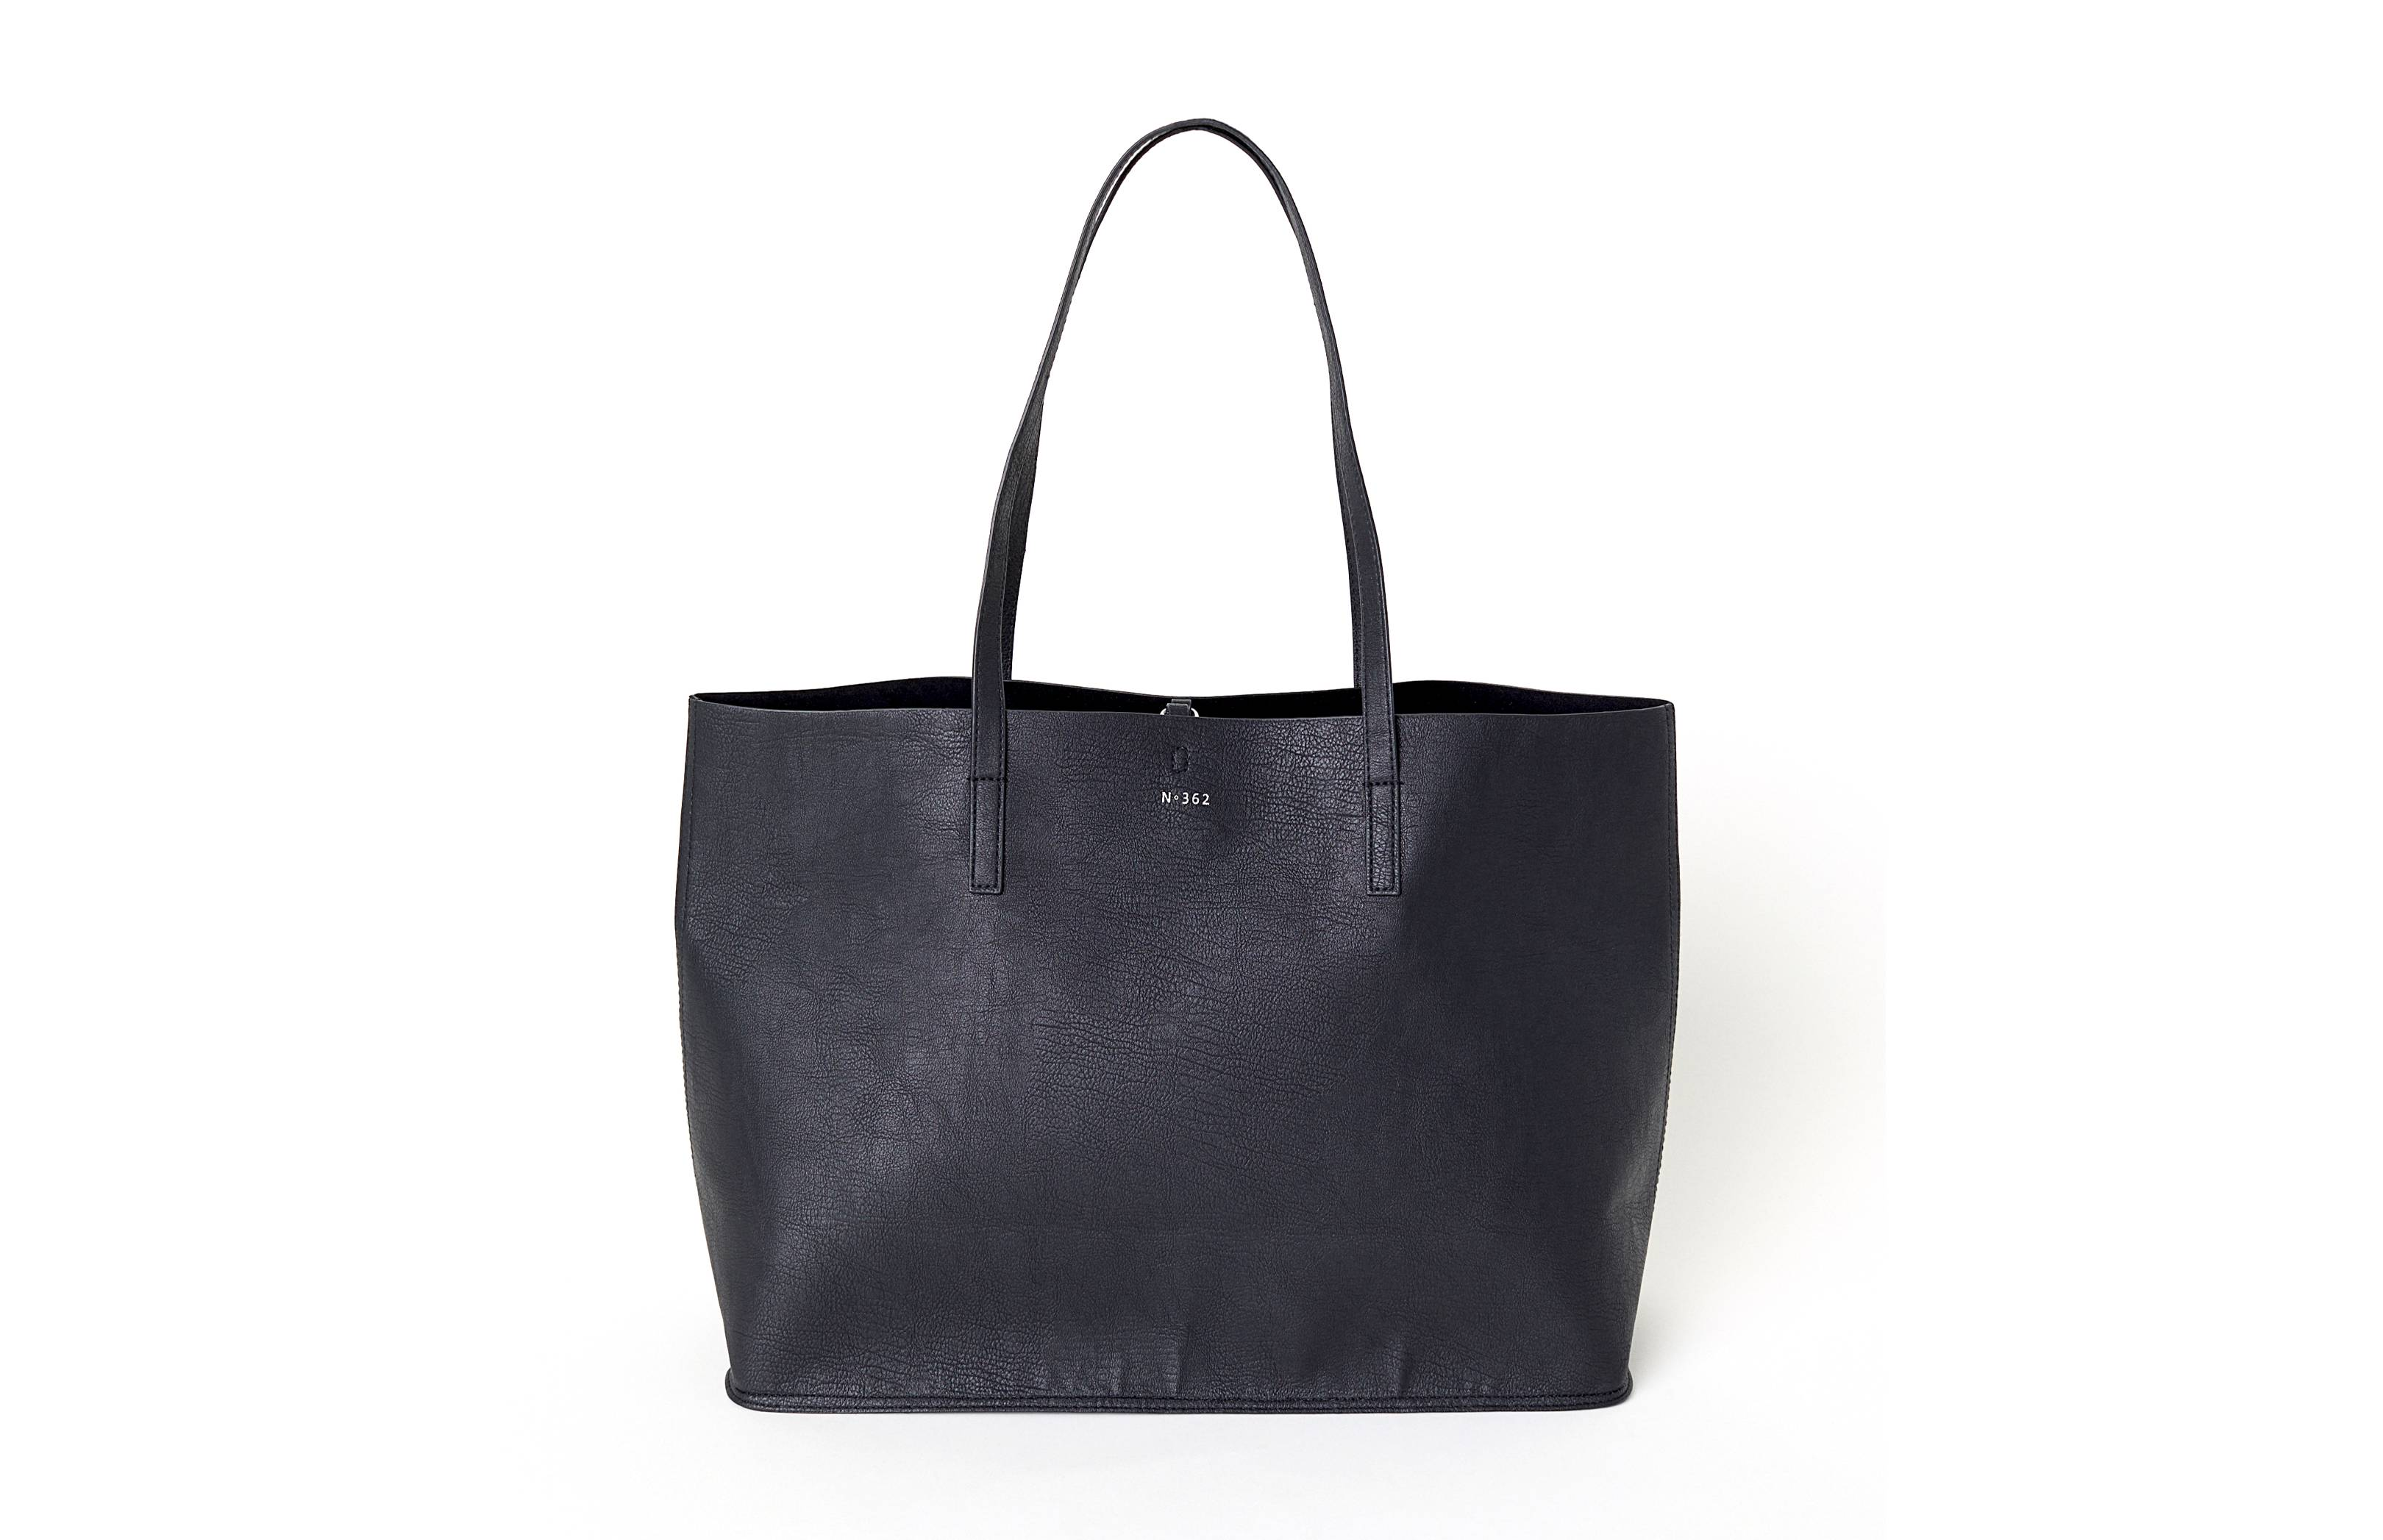 052de3a2d588 The Tote Bag  The Best Styles To Wear With Everything